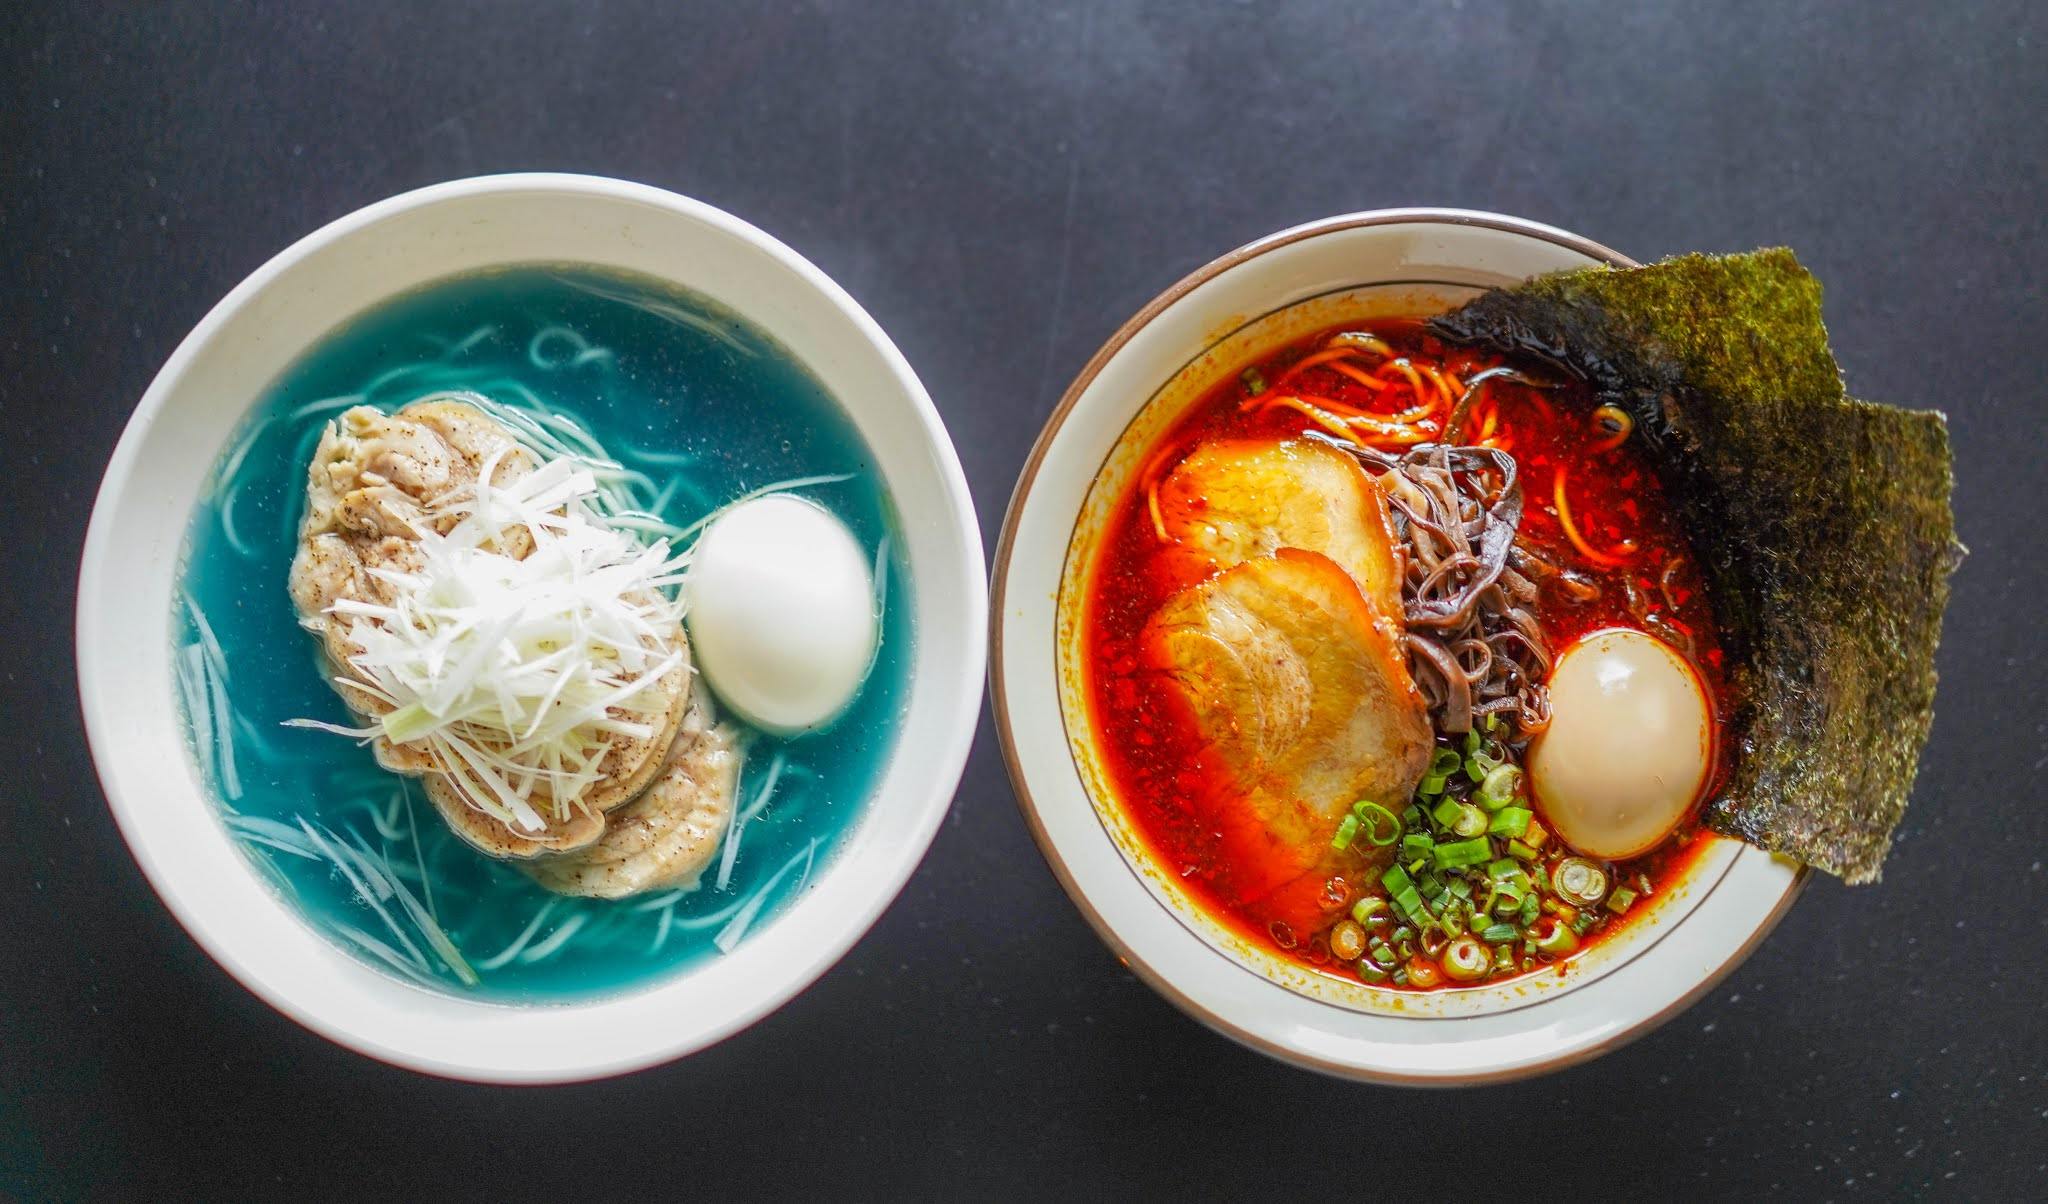 shin haru tei, jaya one: blue & red ramen specials